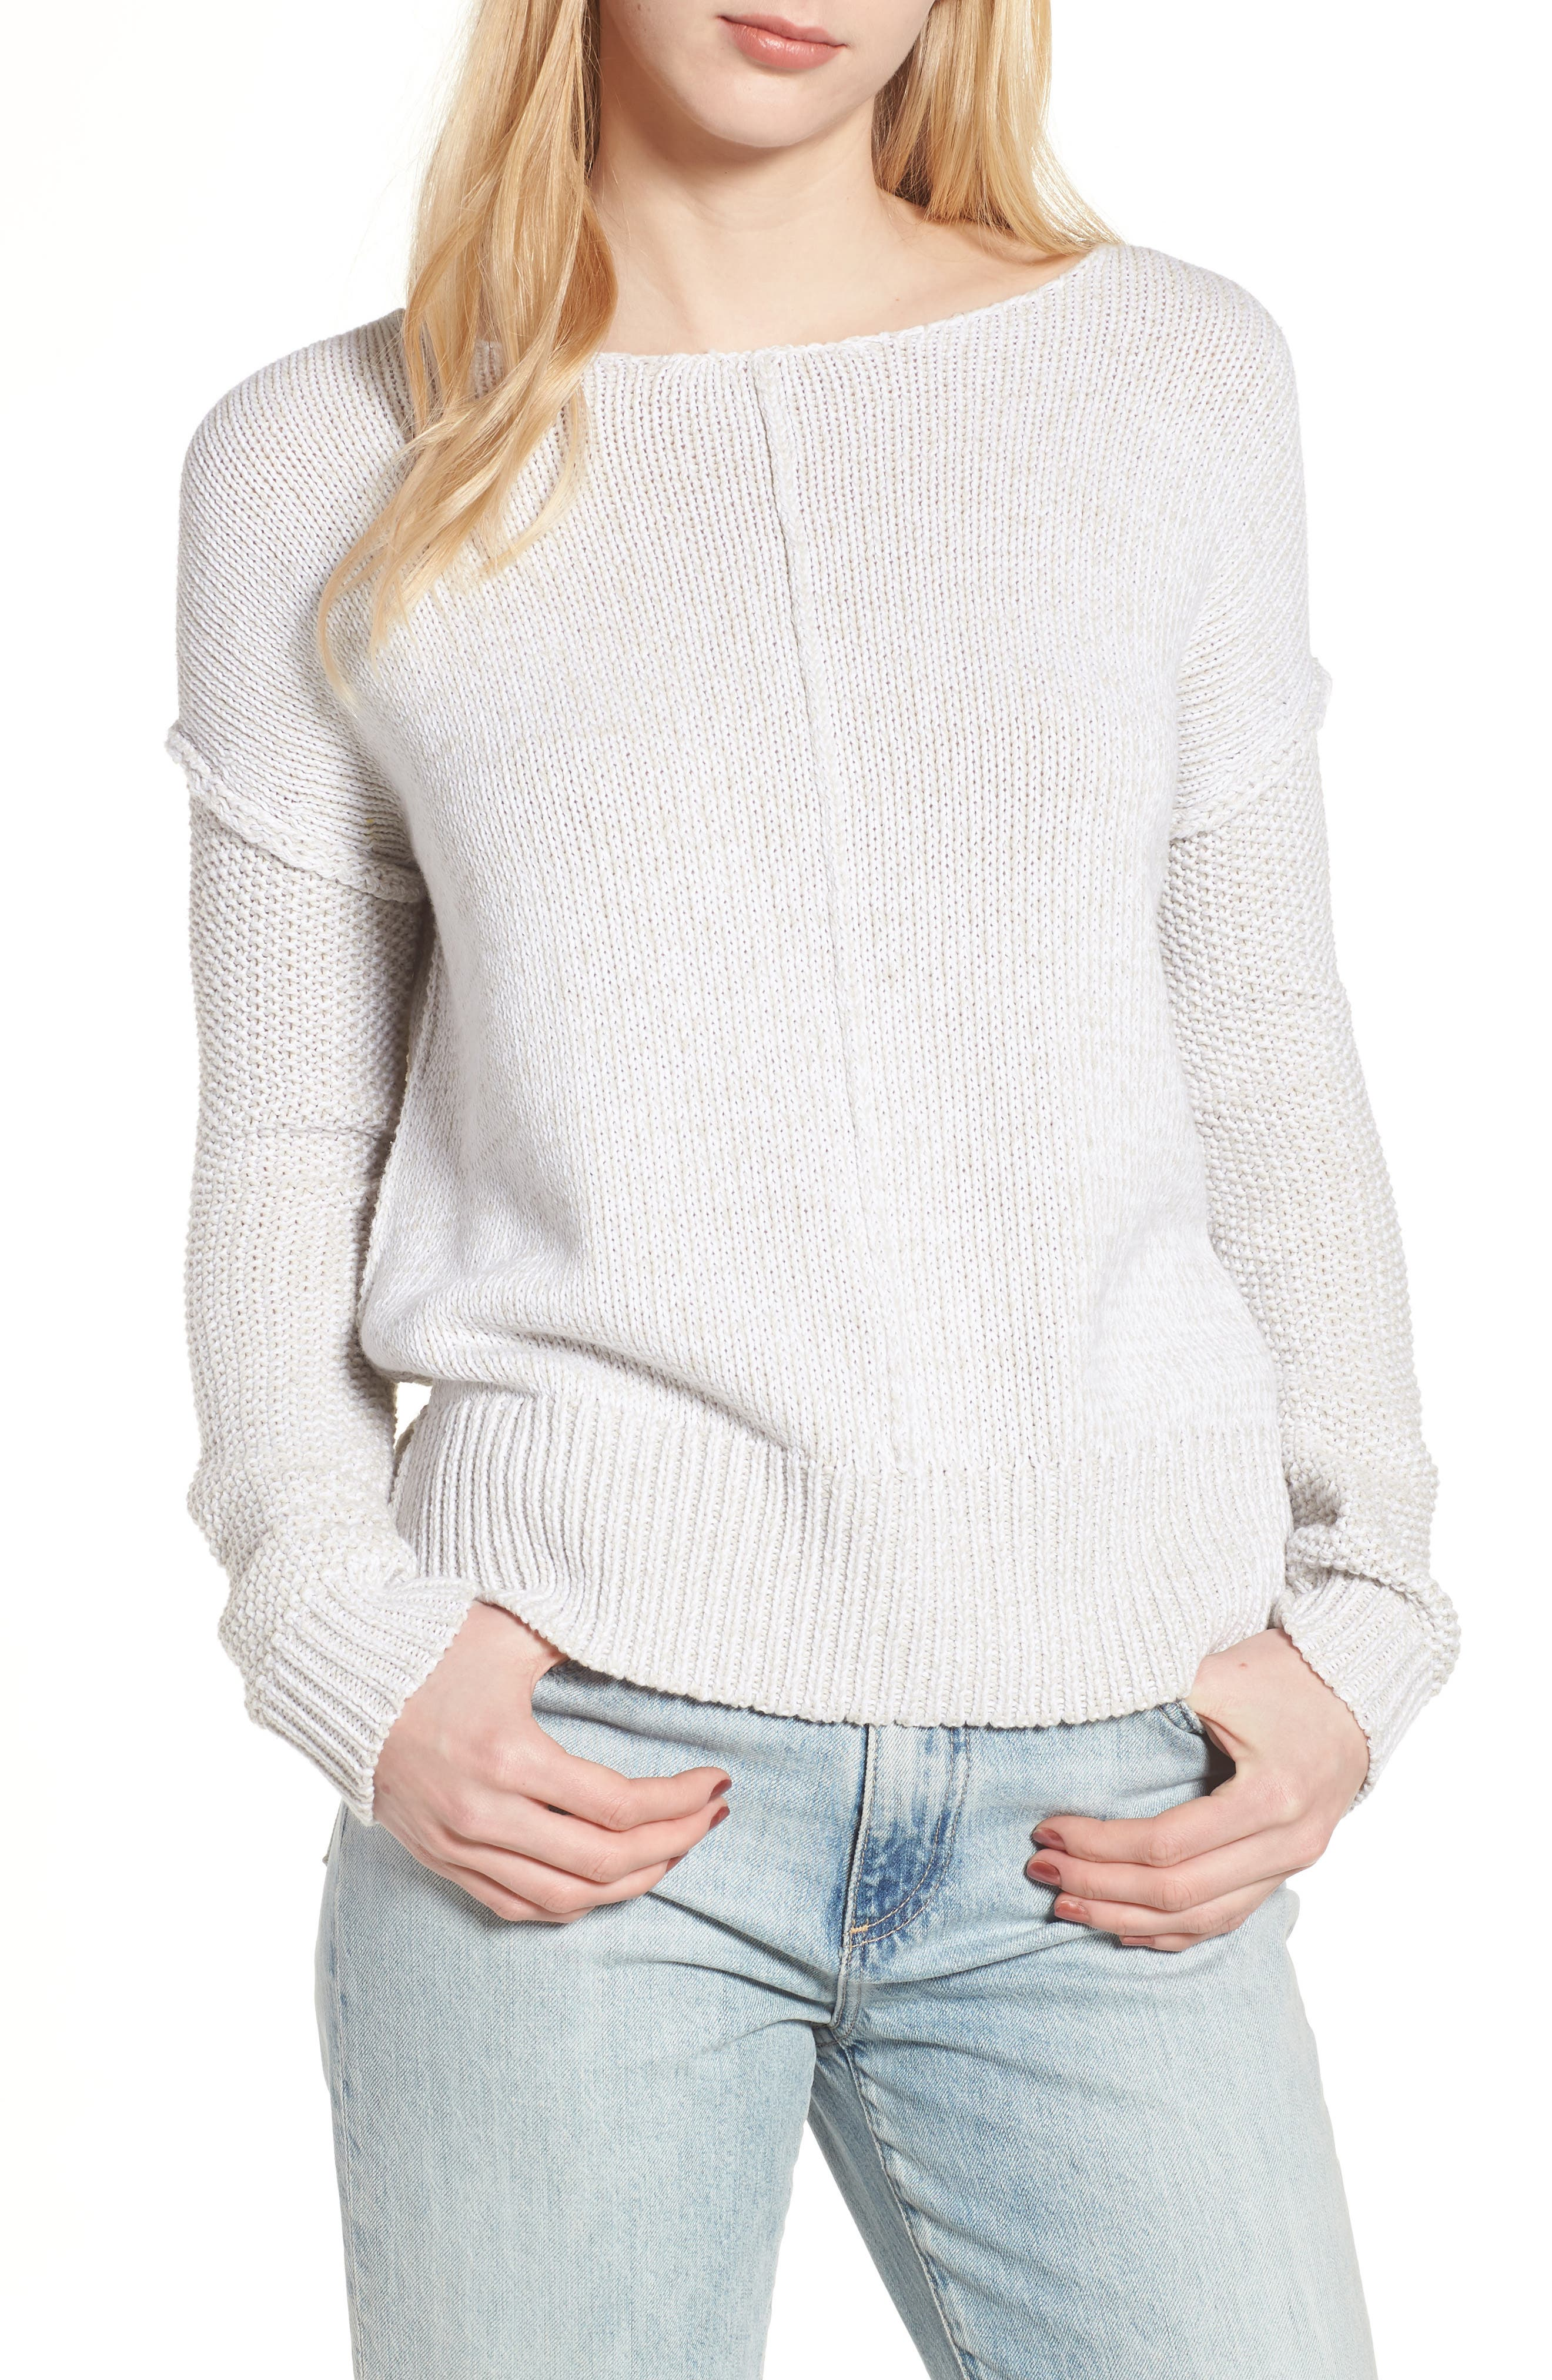 Lola Reversible Twist Sweater,                             Main thumbnail 1, color,                             100